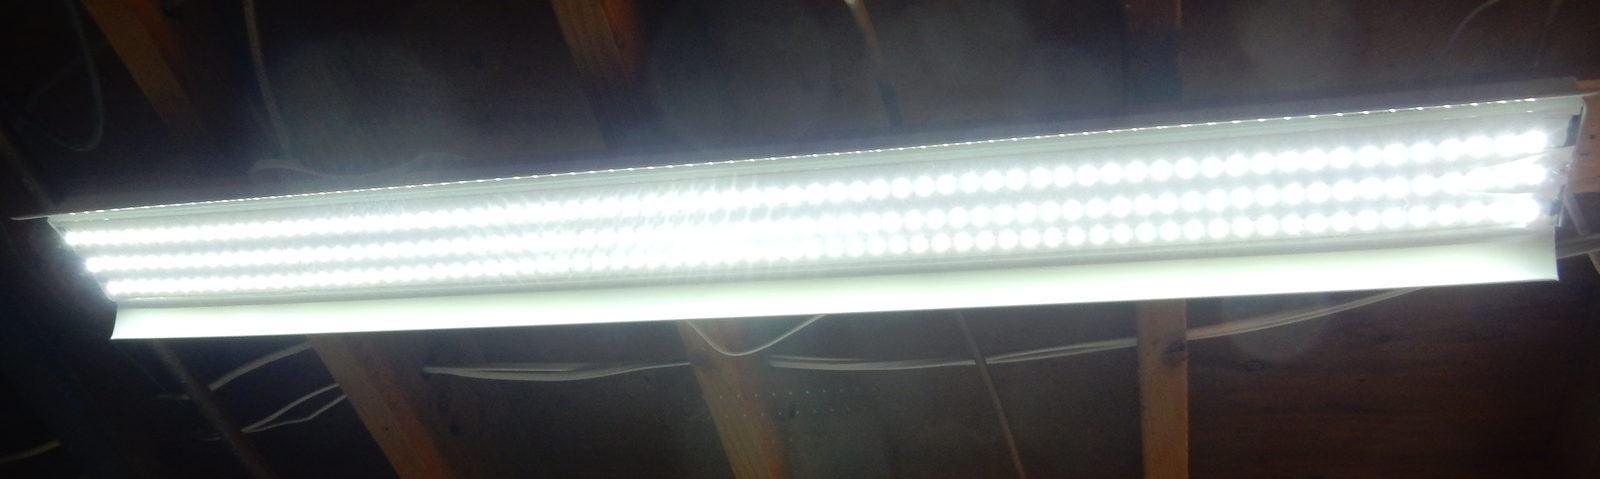 Kit: 60W Power Supply + 2x 4' LED Strips, Warm White, Florescent Tube Retrofit